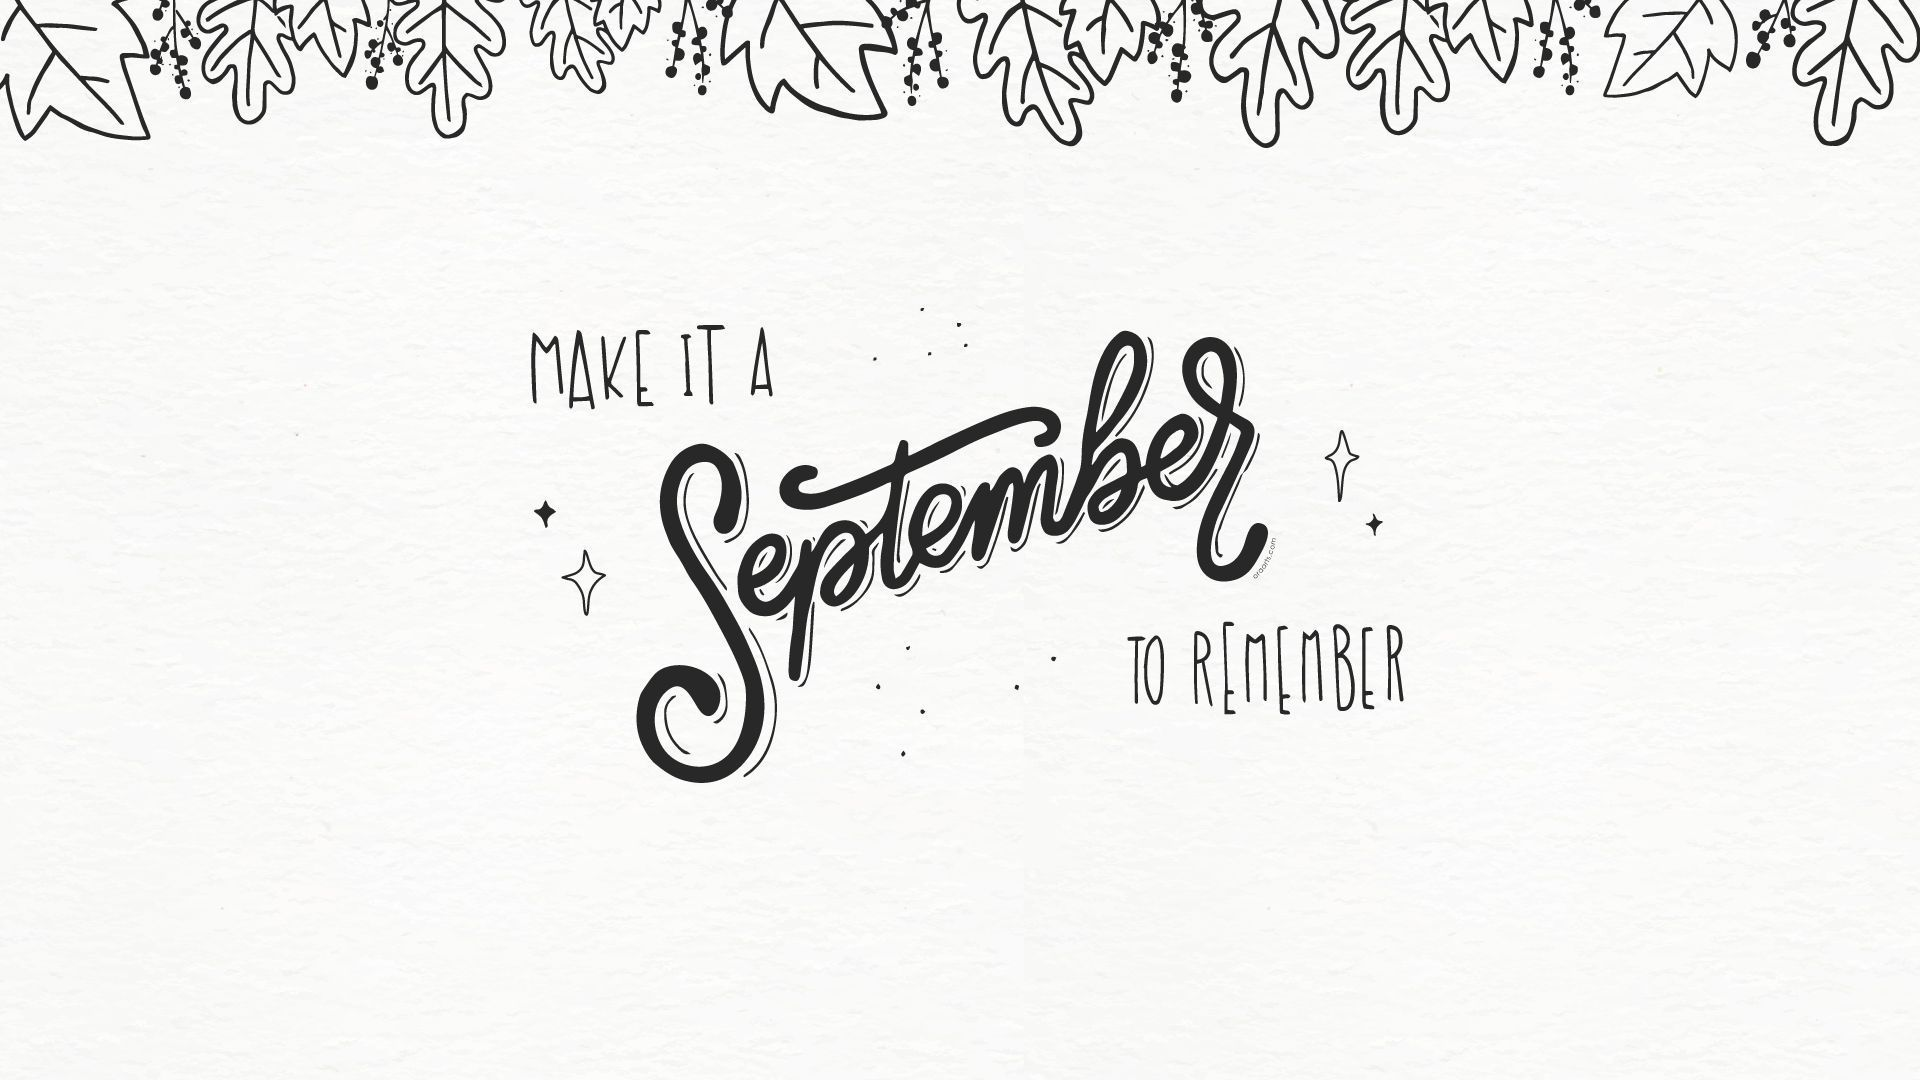 Free Hello September Wallpapers #septemberwallpaper Free Hello September Wallpapers #septemberwallpaper Free Hello September Wallpapers #septemberwallpaper Free Hello September Wallpapers #helloseptember